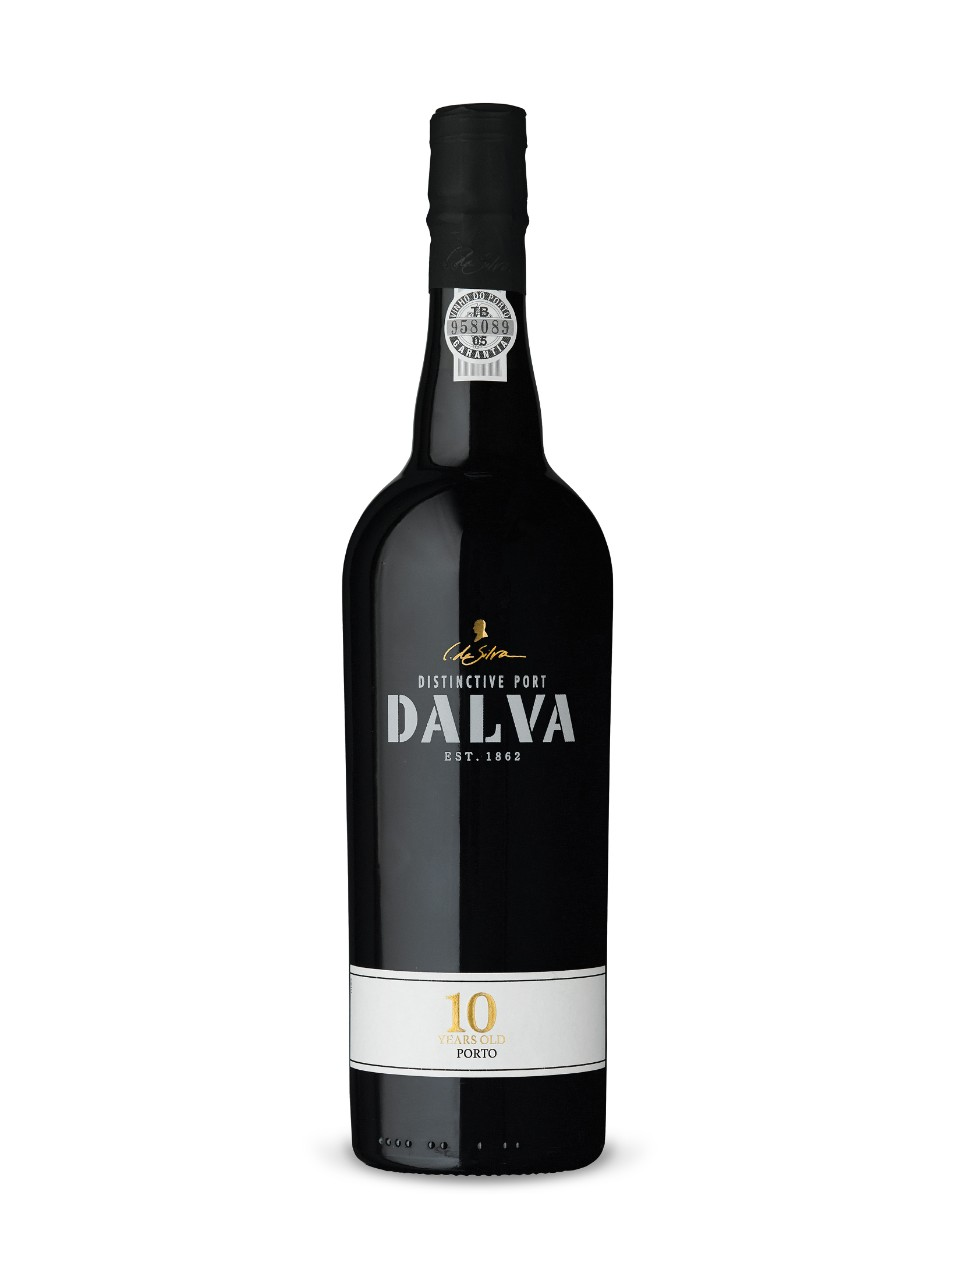 C. Da Silva Dalva 10-Year-Old Tawny Port